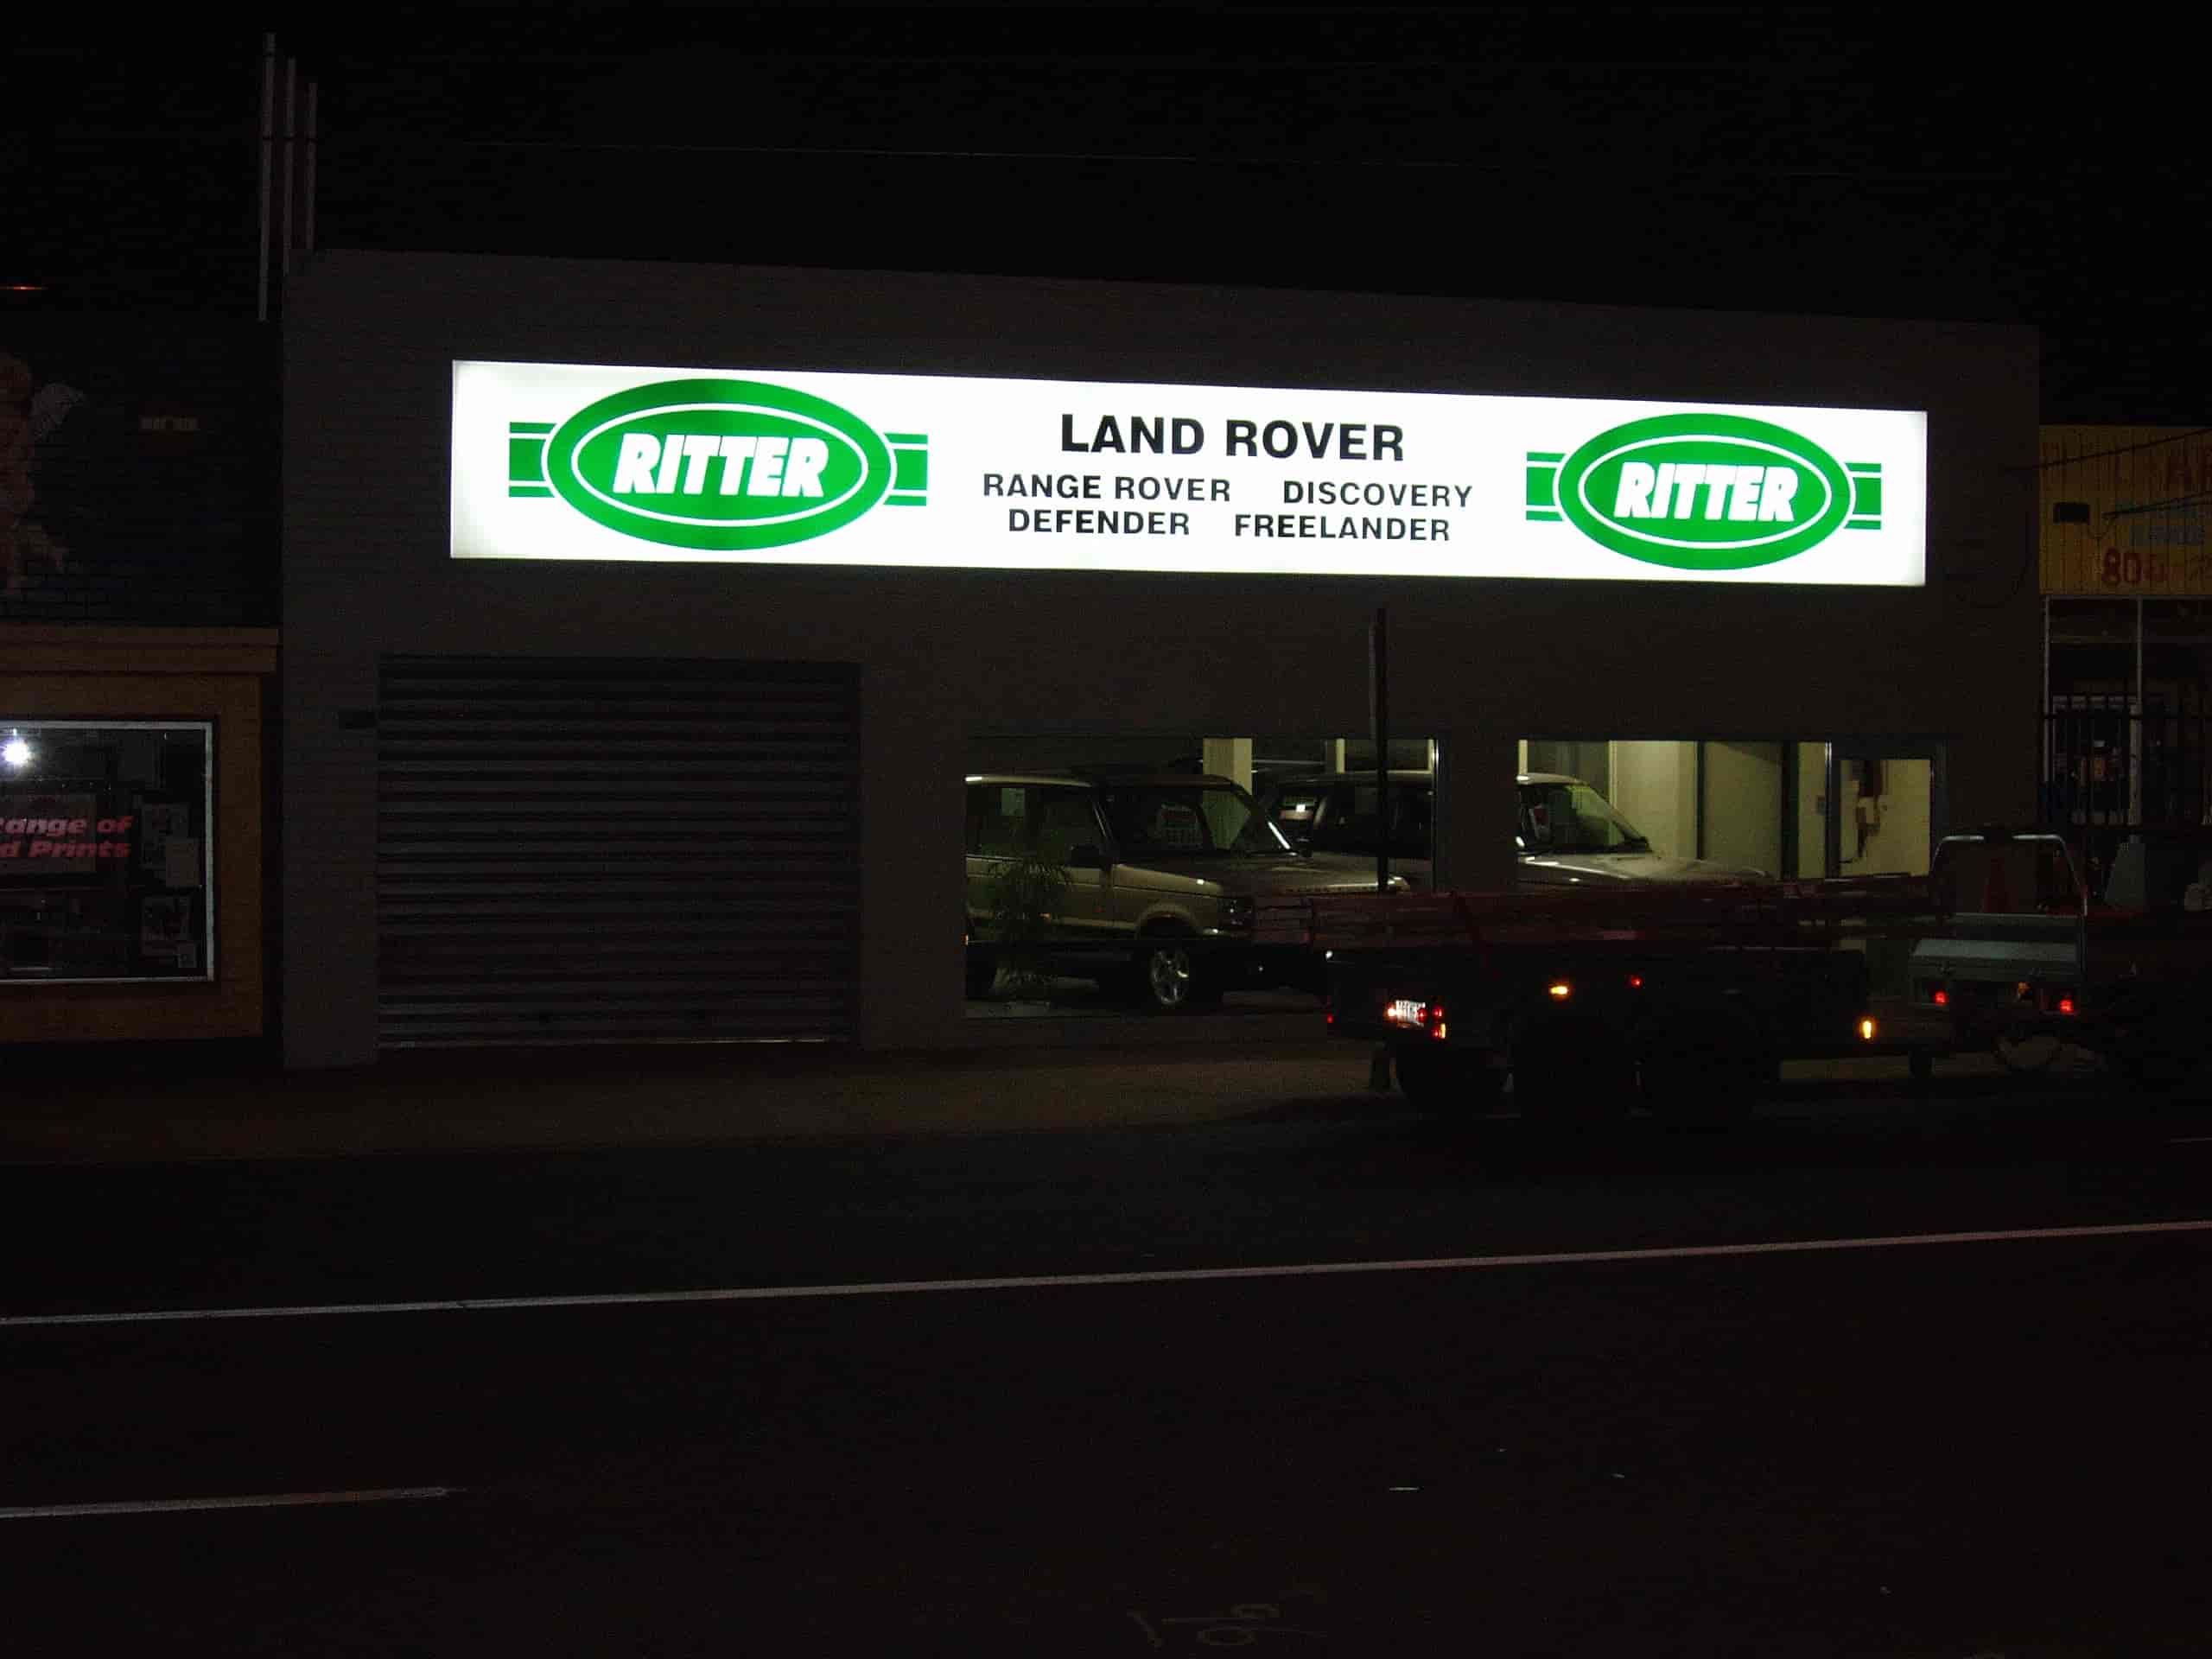 illuminated signs Melbourne land rover ritter